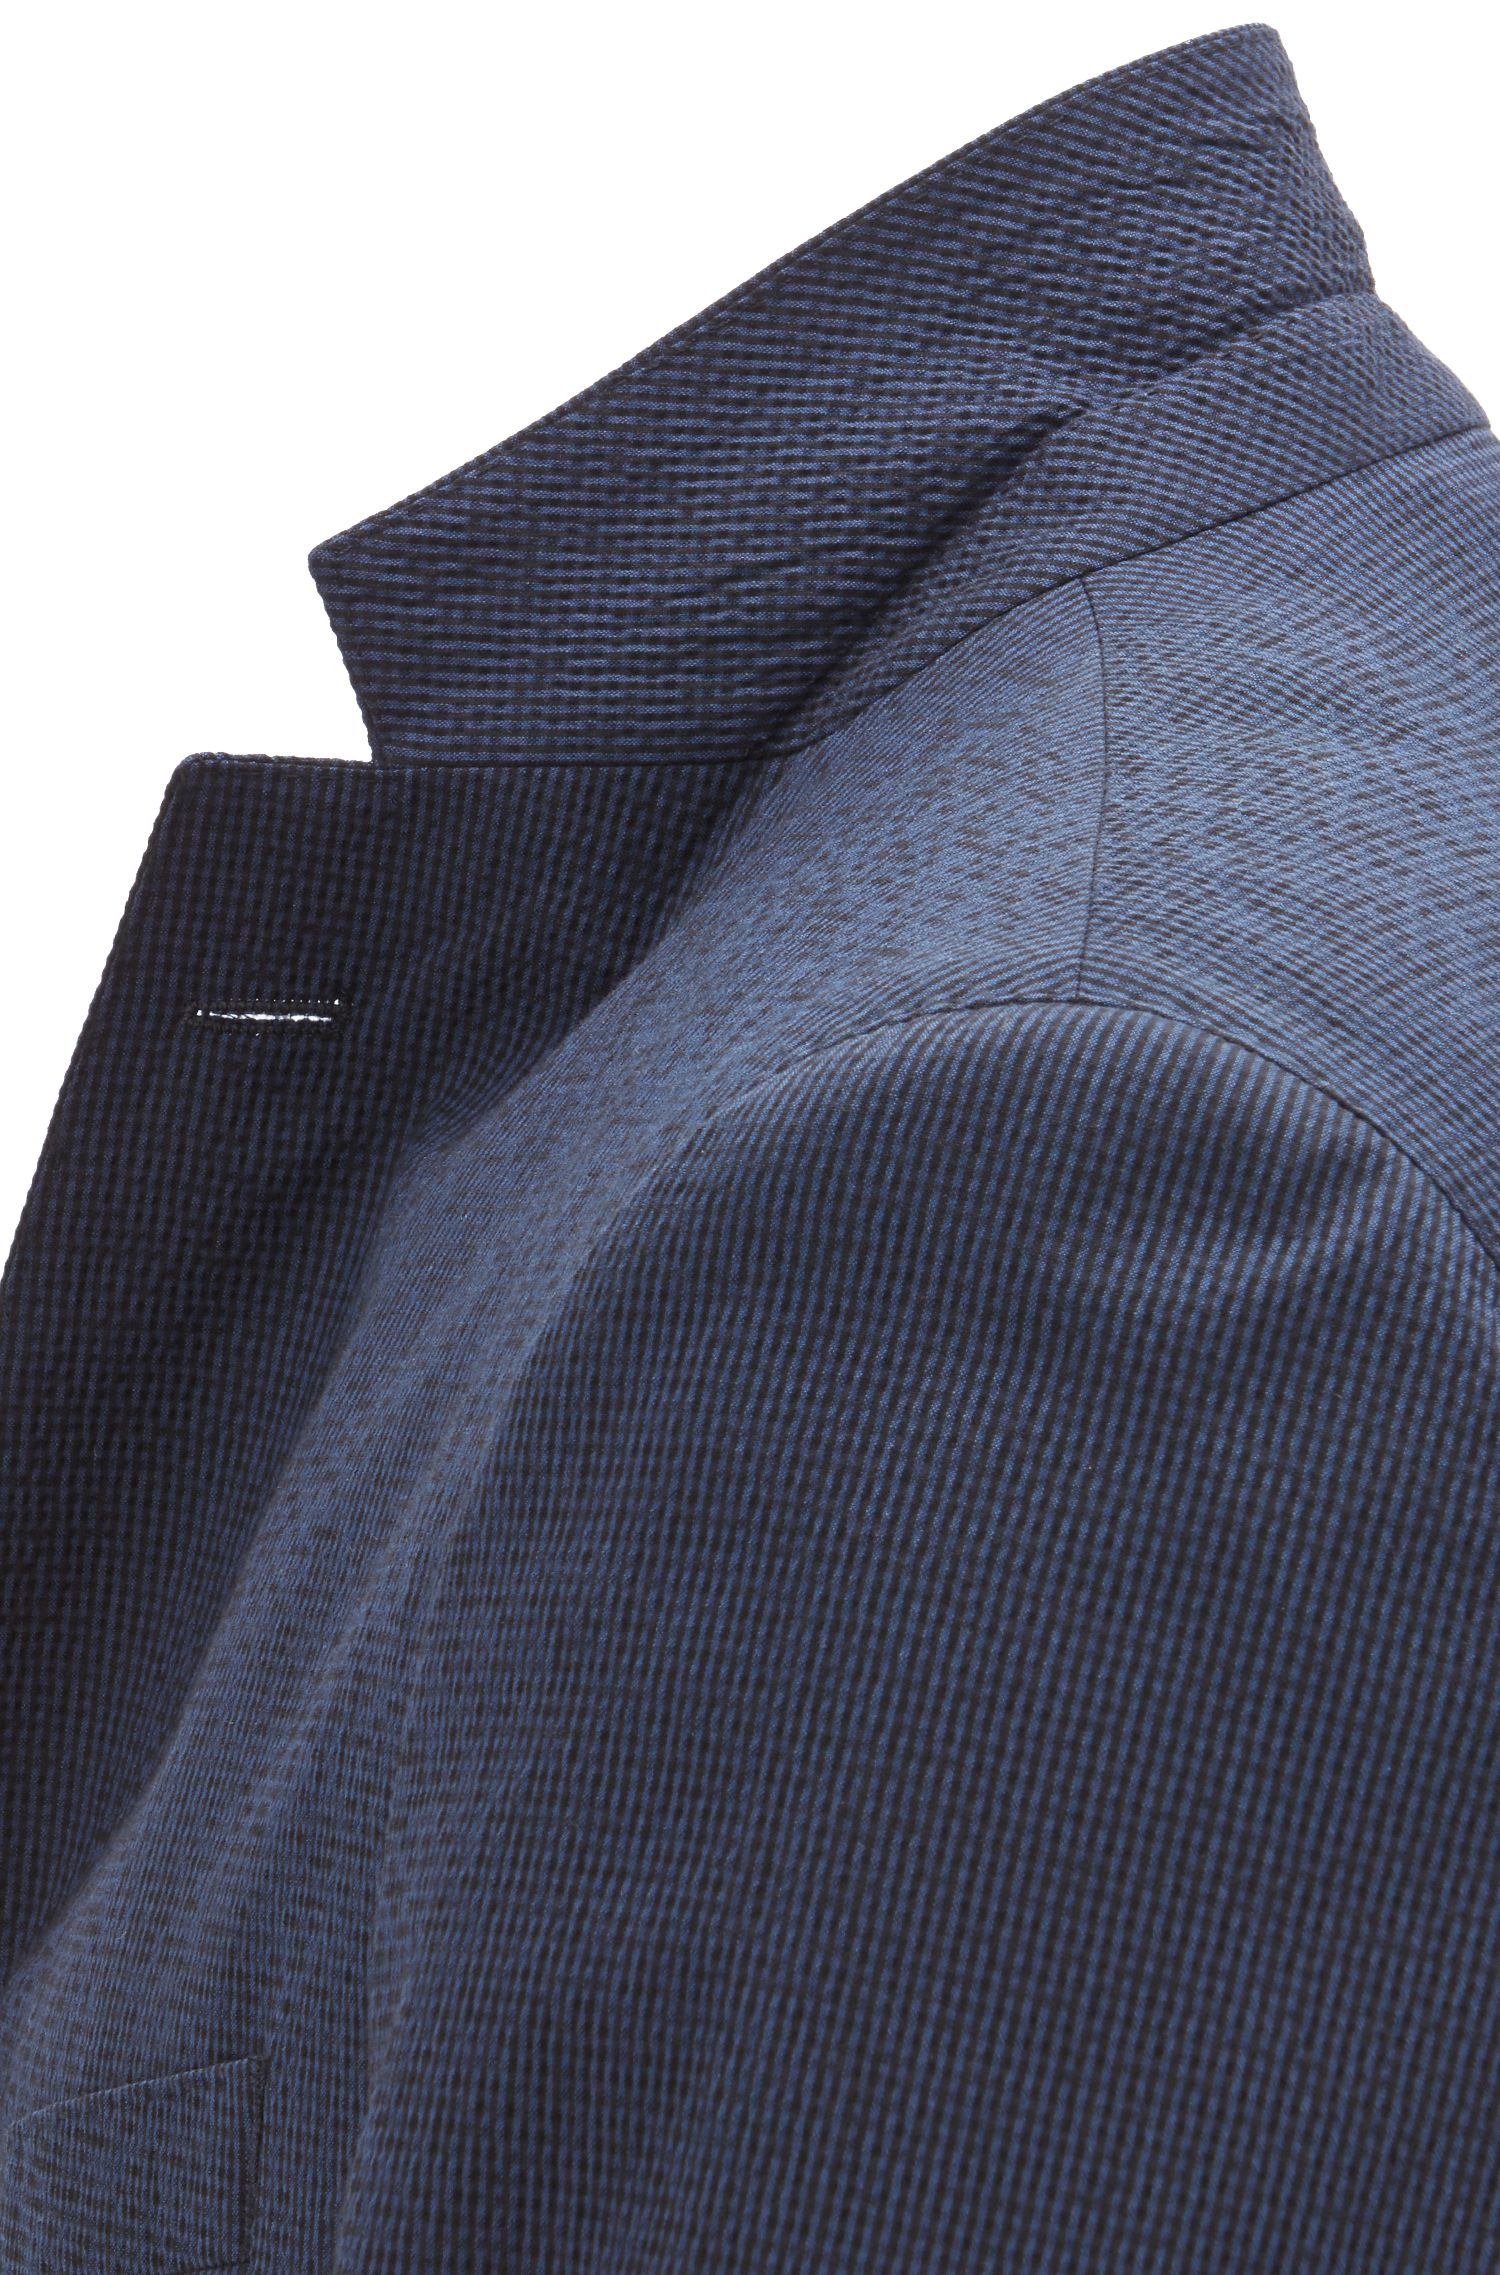 Slim-fit jacket in micro-patterned seersucker, Open Blue